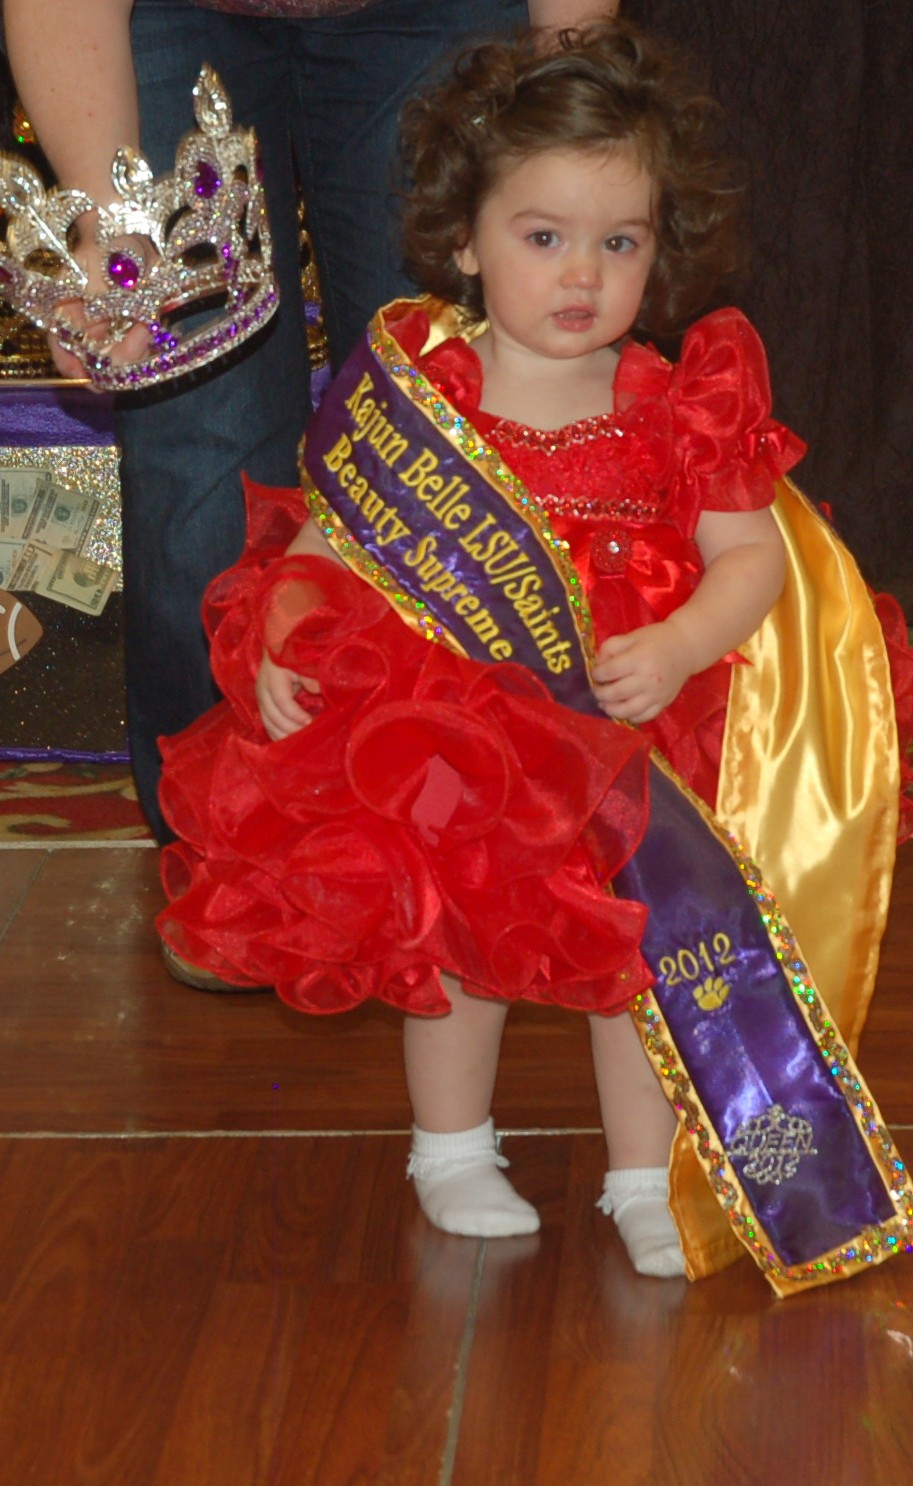 Upcoming Pageants In Louisiana http://misskajunbelle.webs.com/apps/photos/photo?photoid=166524953